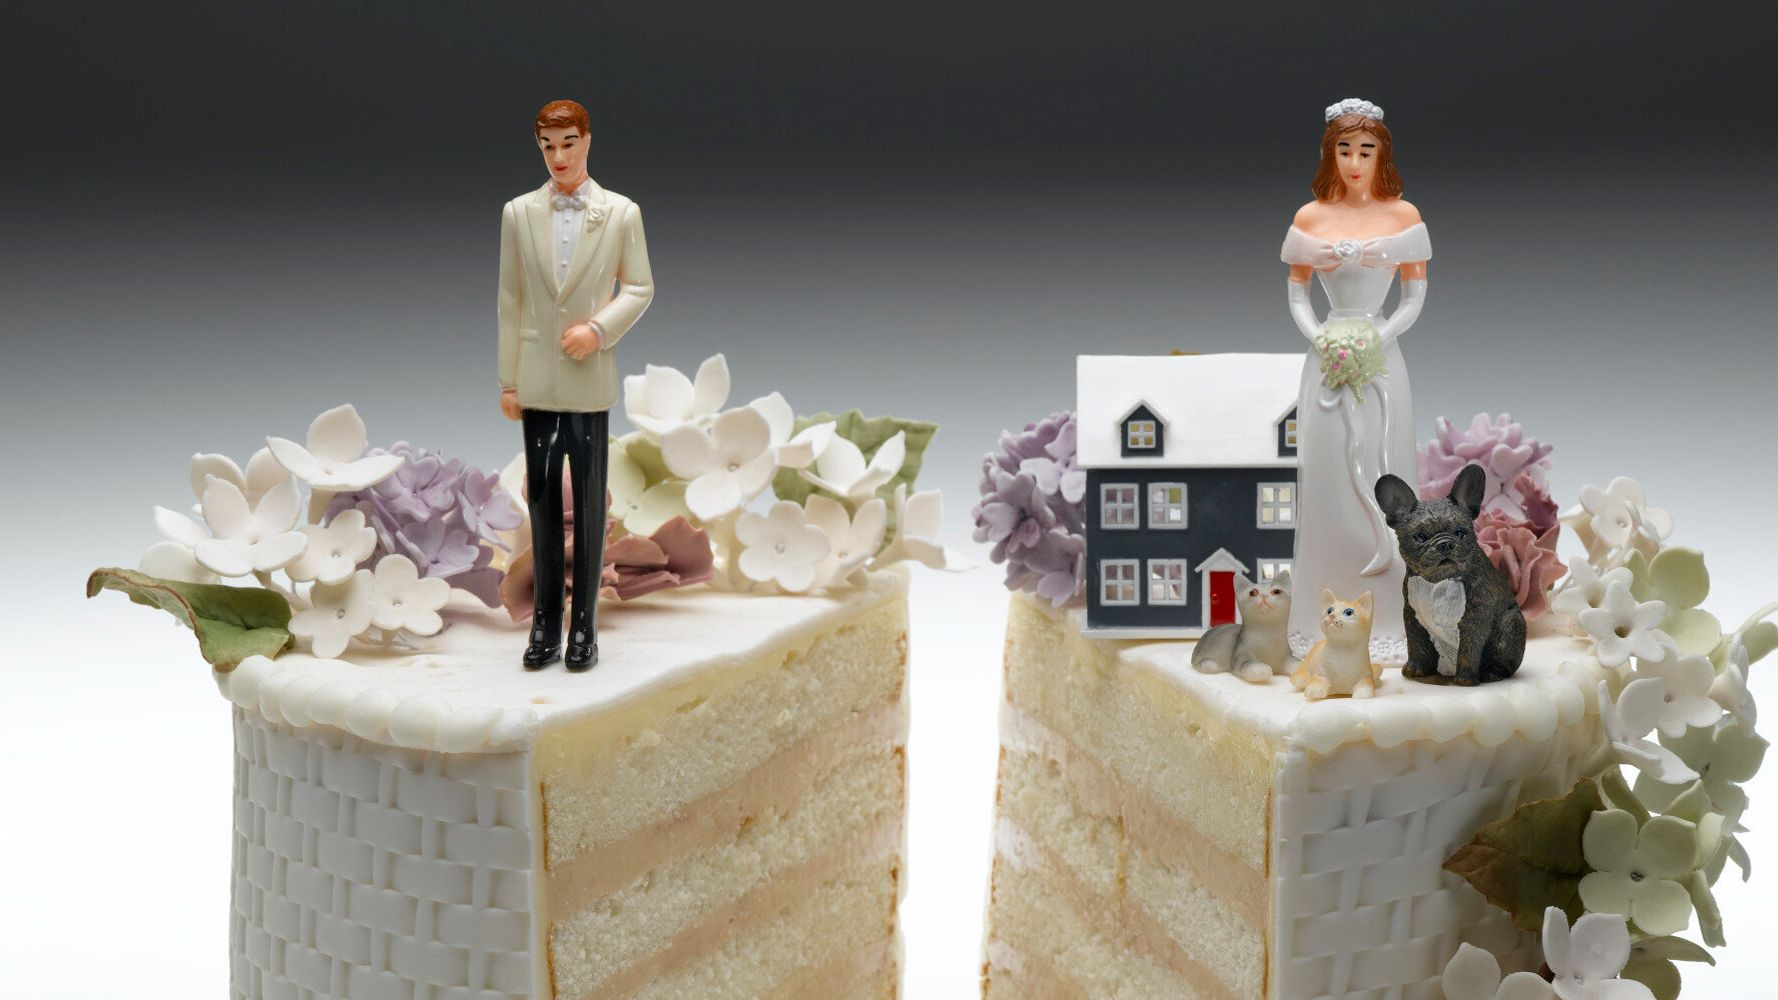 Ex-wife Wins Right to Claim Against Her Wealthy Ex-Husband 23 Years